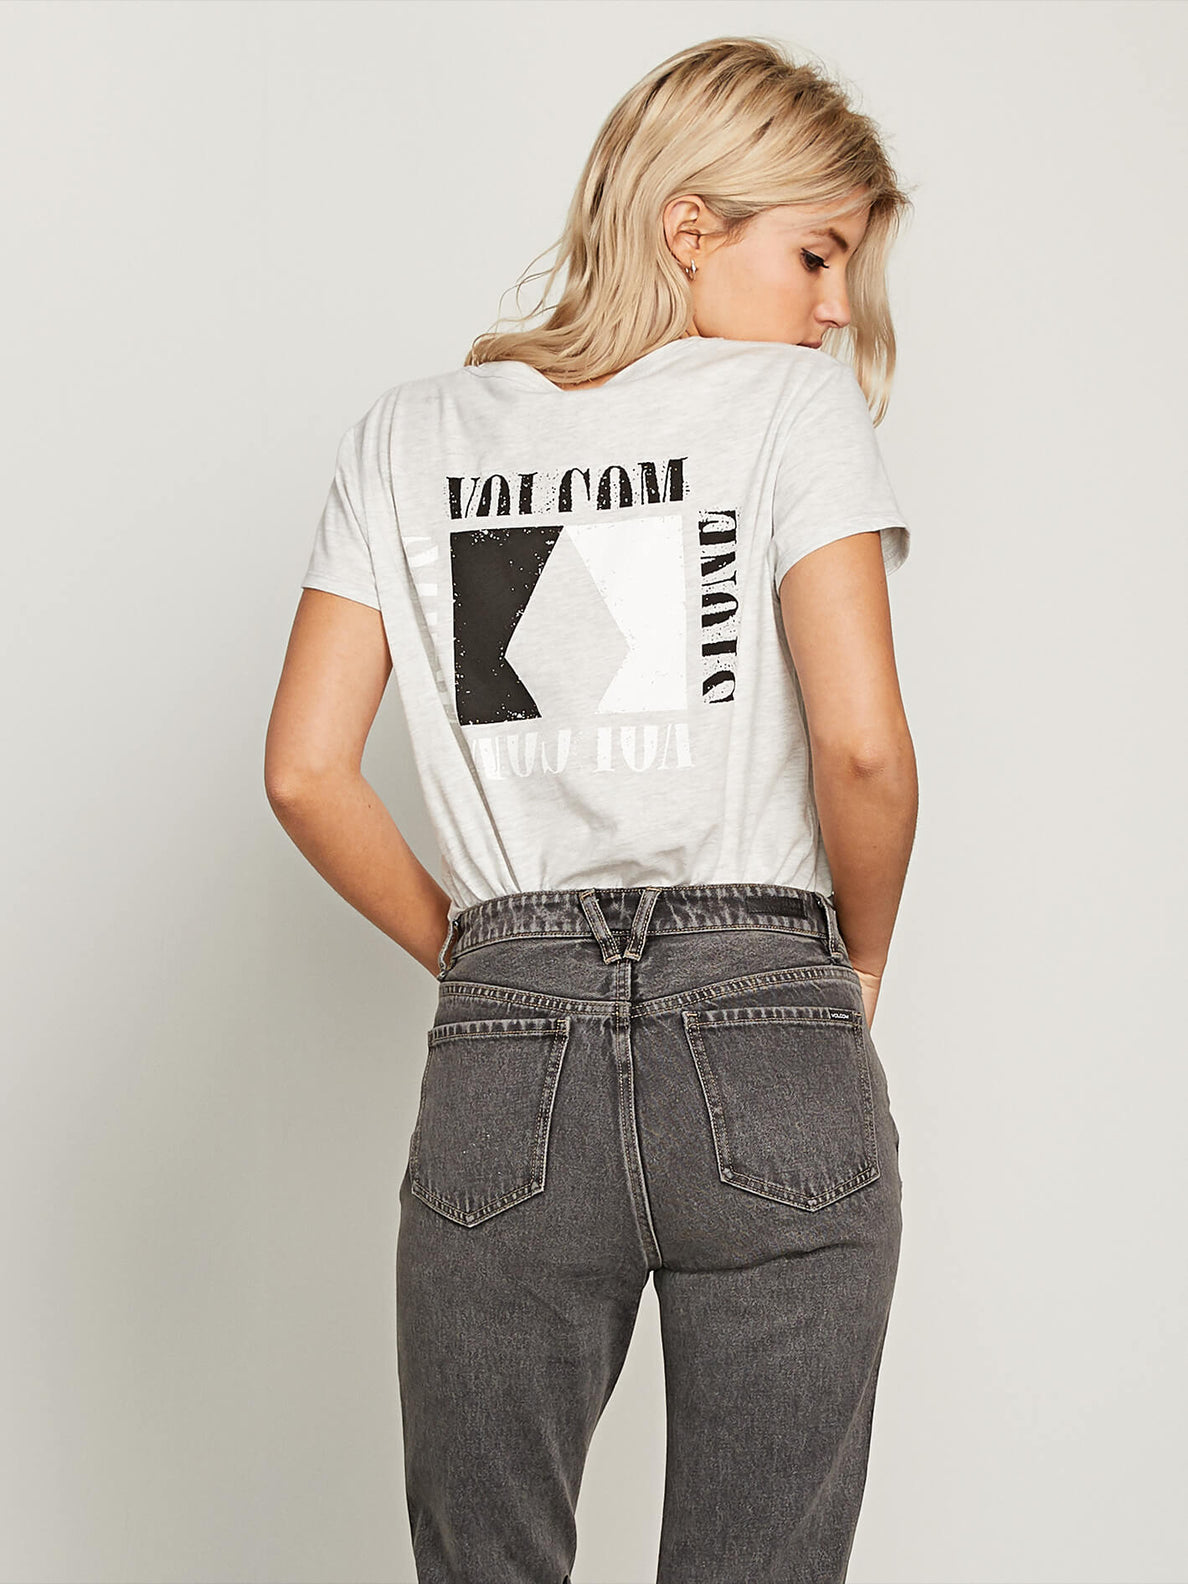 Easy Babe Rad 2 Tee In MISSING Back View